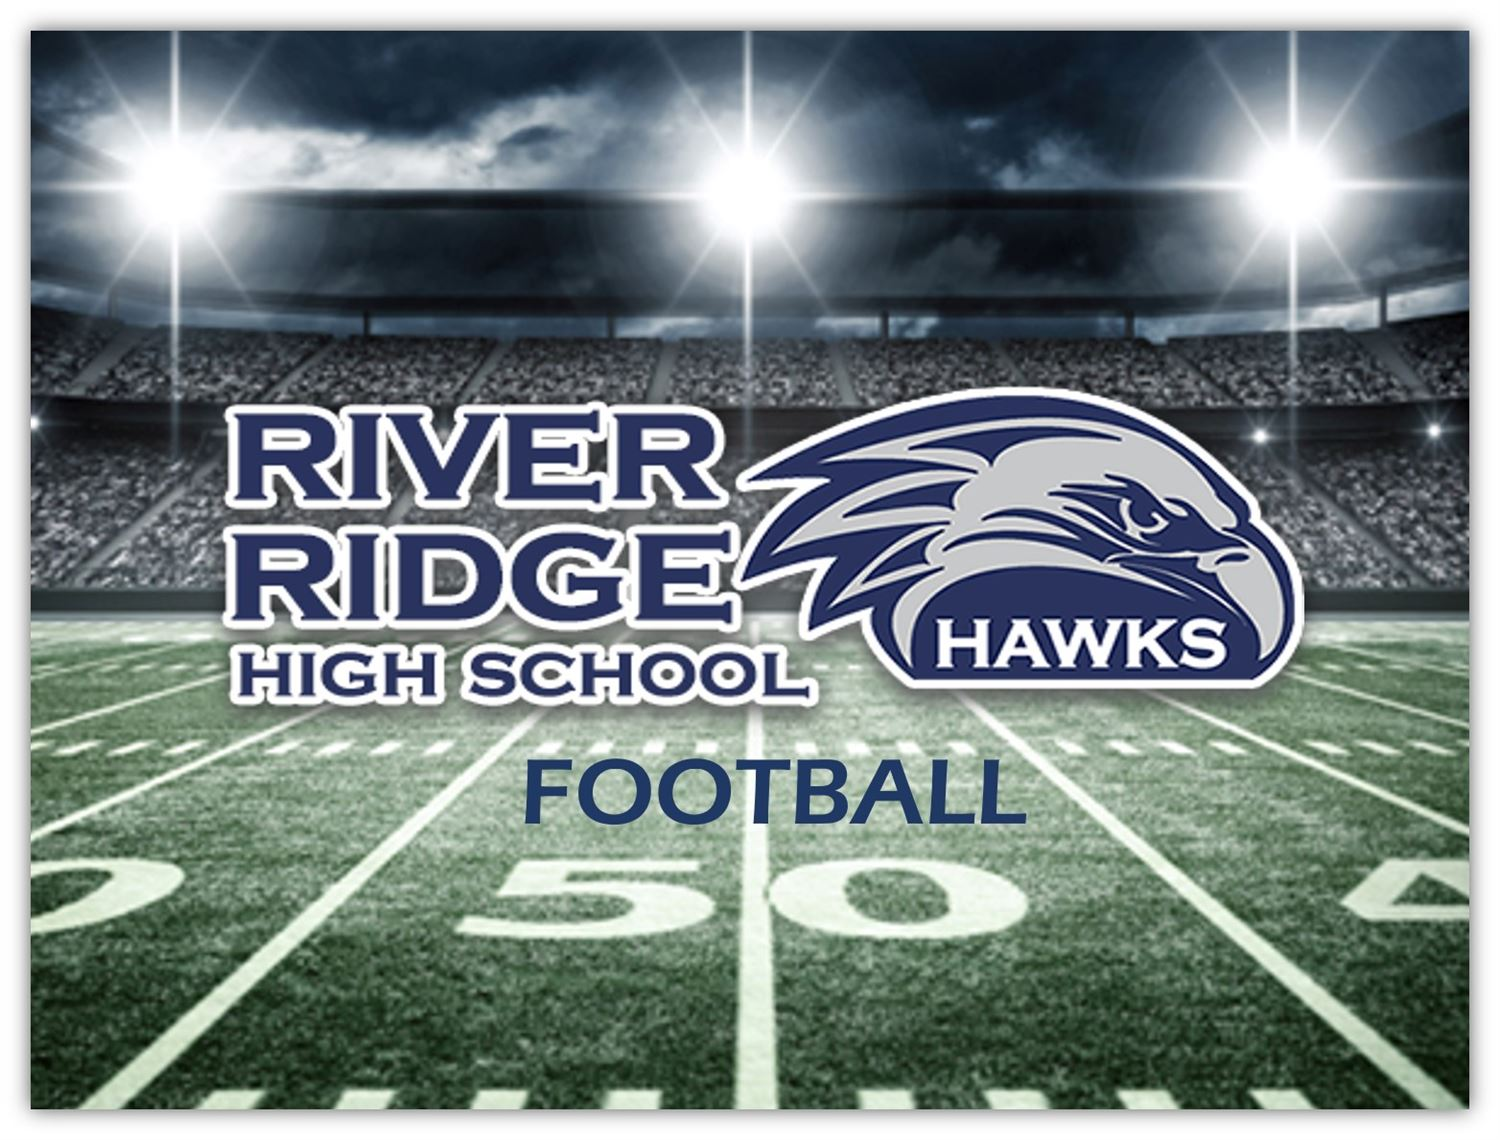 River Ridge High School - River Ridge Boys Varsity Football